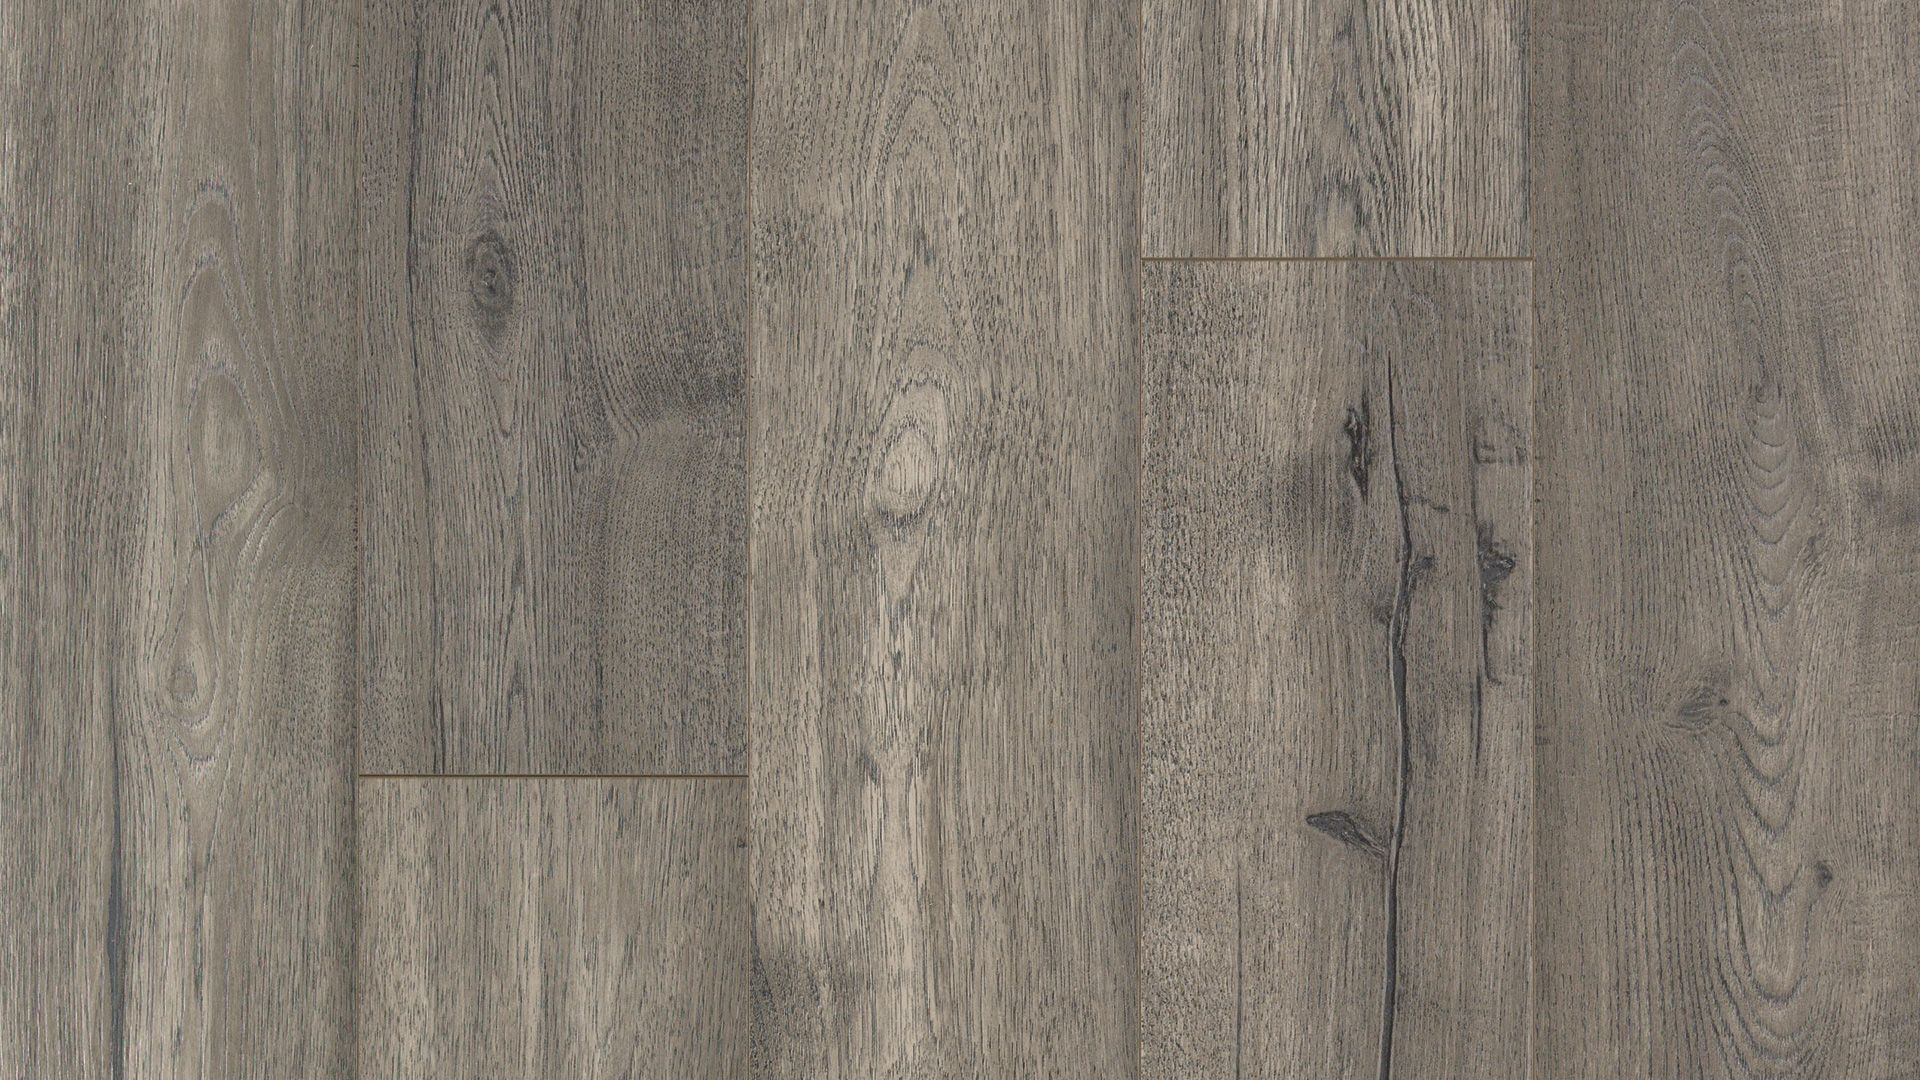 Silvermist Oak Natural Authentic Laminate Floor Grey Color Oak Wood Finish 12mm 1 Strip Plank Laminate Floor Pergo Flooring Laminate Flooring Plank Flooring